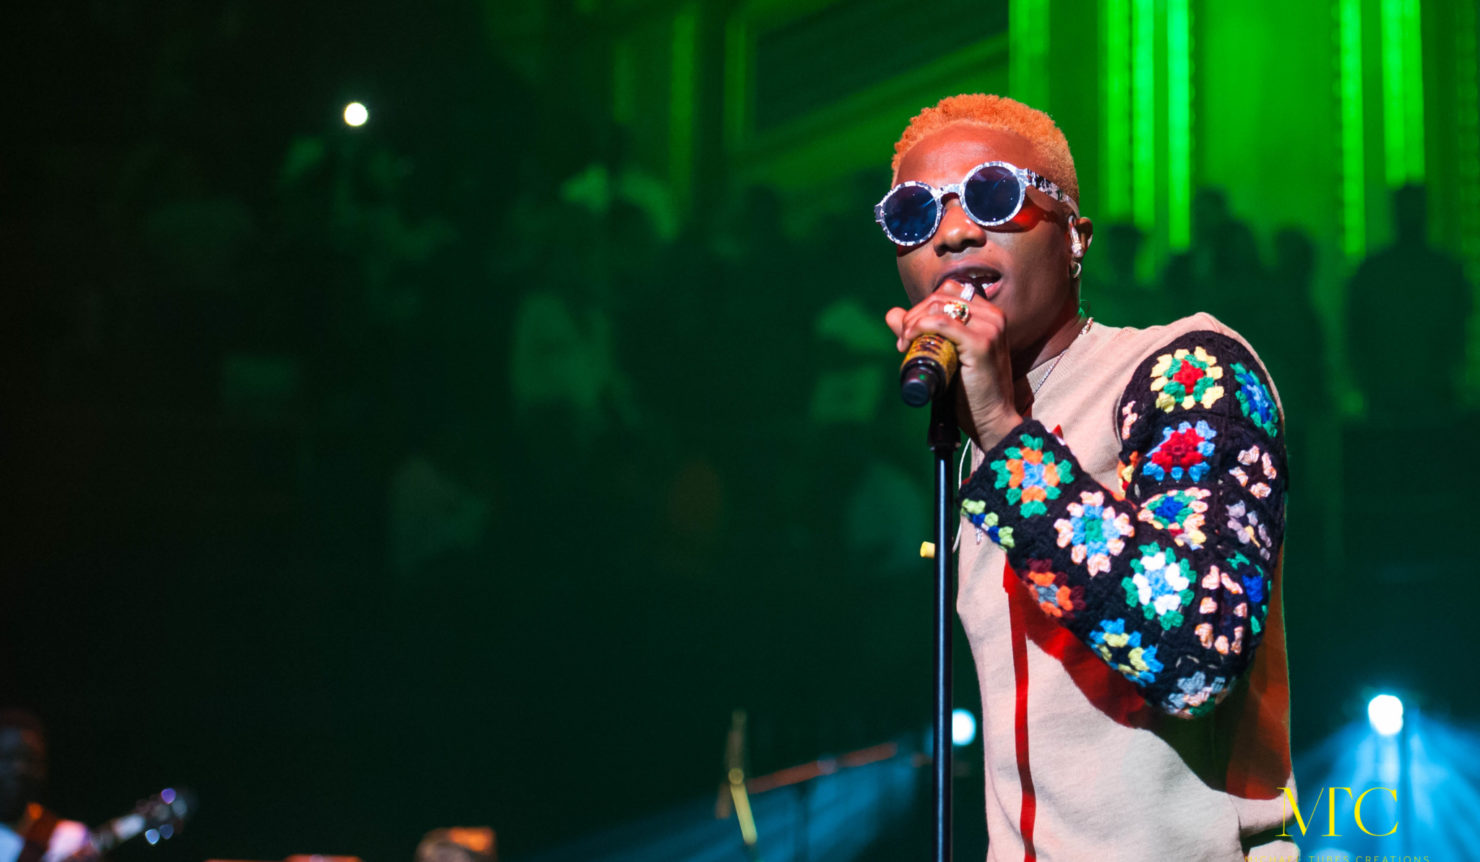 The Music Ep Wizkid Announces Made In Lagos Ep His Next Music Project